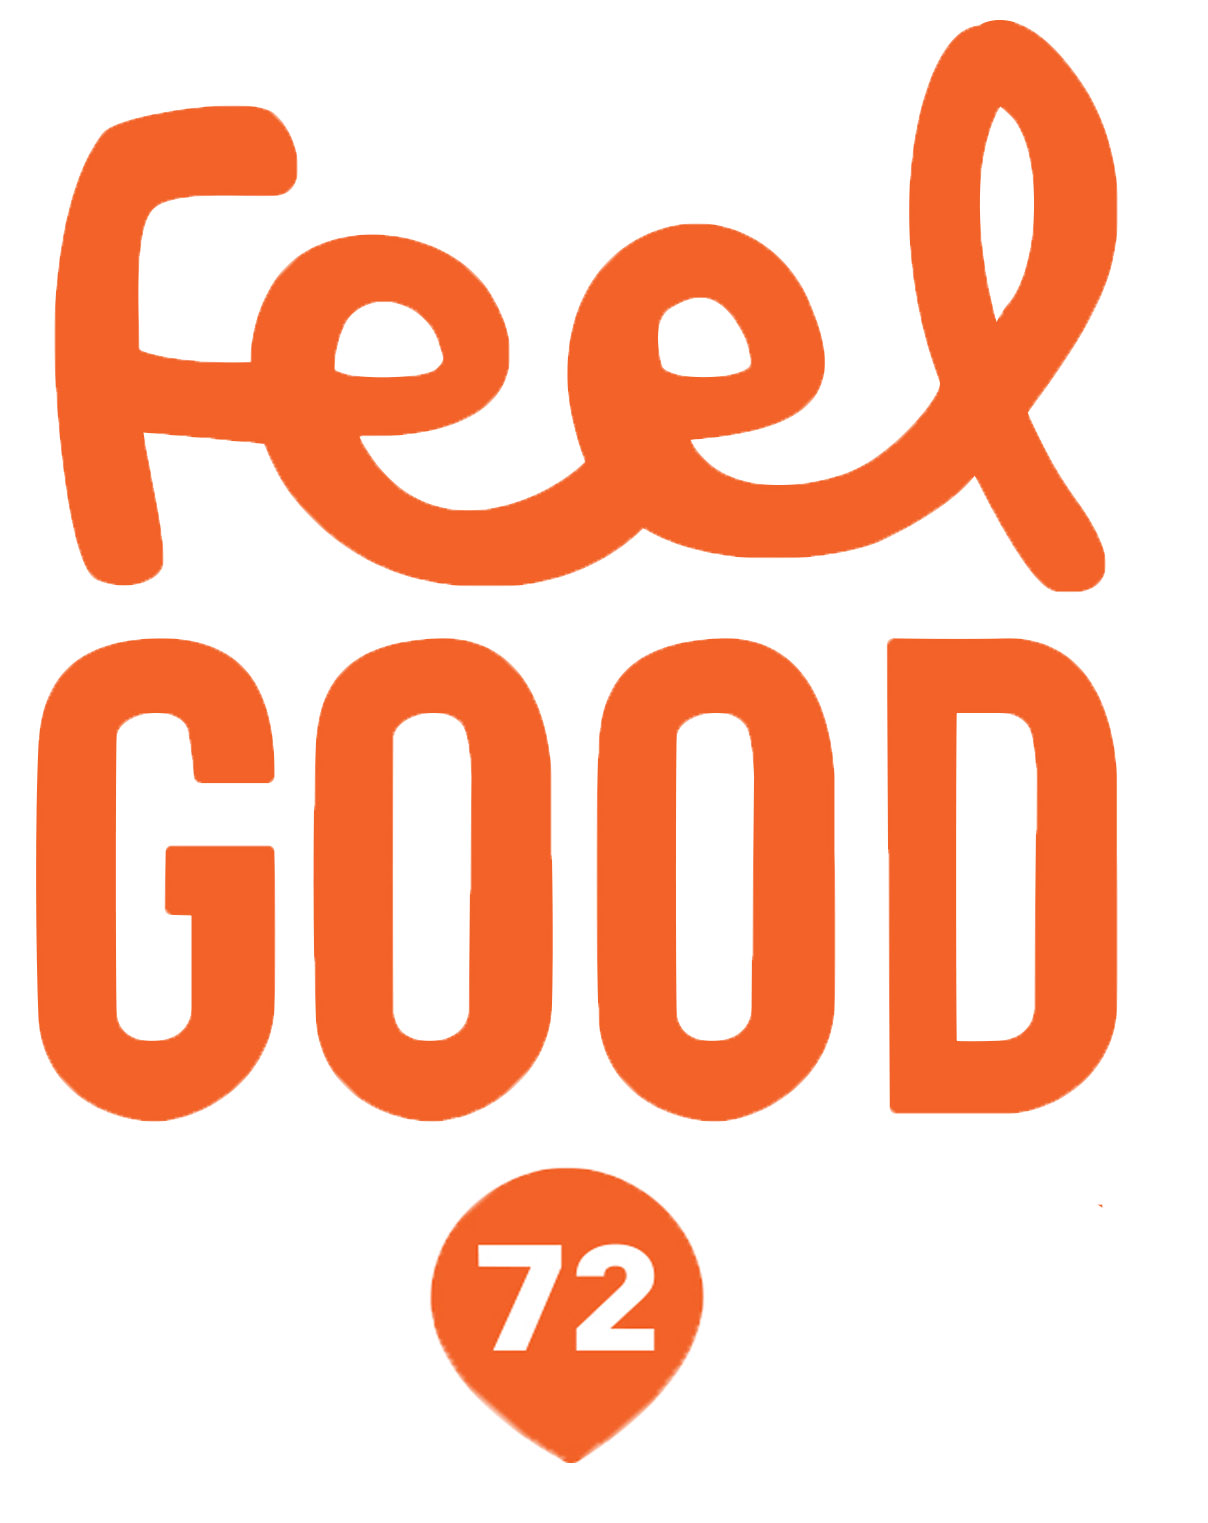 logo FEEL GOOD 72_orange